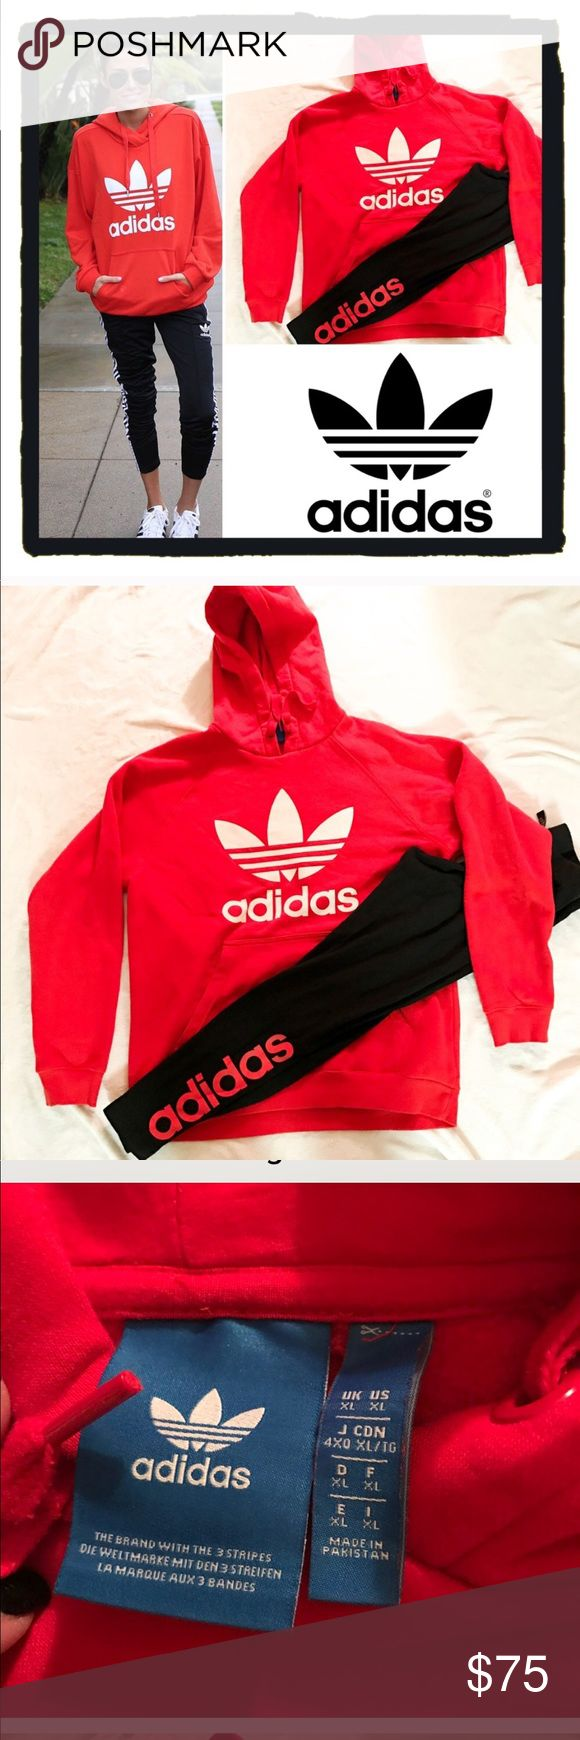 """Set of adidas leggings and sweatshirt Is an xl but as you can see it fits smaller as adidas do they run smaller more like a medium or smaller large (I'm 5'8"""" 140lbs 36 small c /b cup)  ! Adidas Trefoil sweat outfit running workout bright red reddish orange long sleeved soft top white logo black n matching logo color leggings ! Used but in excellent condition still soft on inside Graphic sweatshirt hoody hooded shirt . Pants are a small/medium leggings . Have listed under multiple sizes for…"""